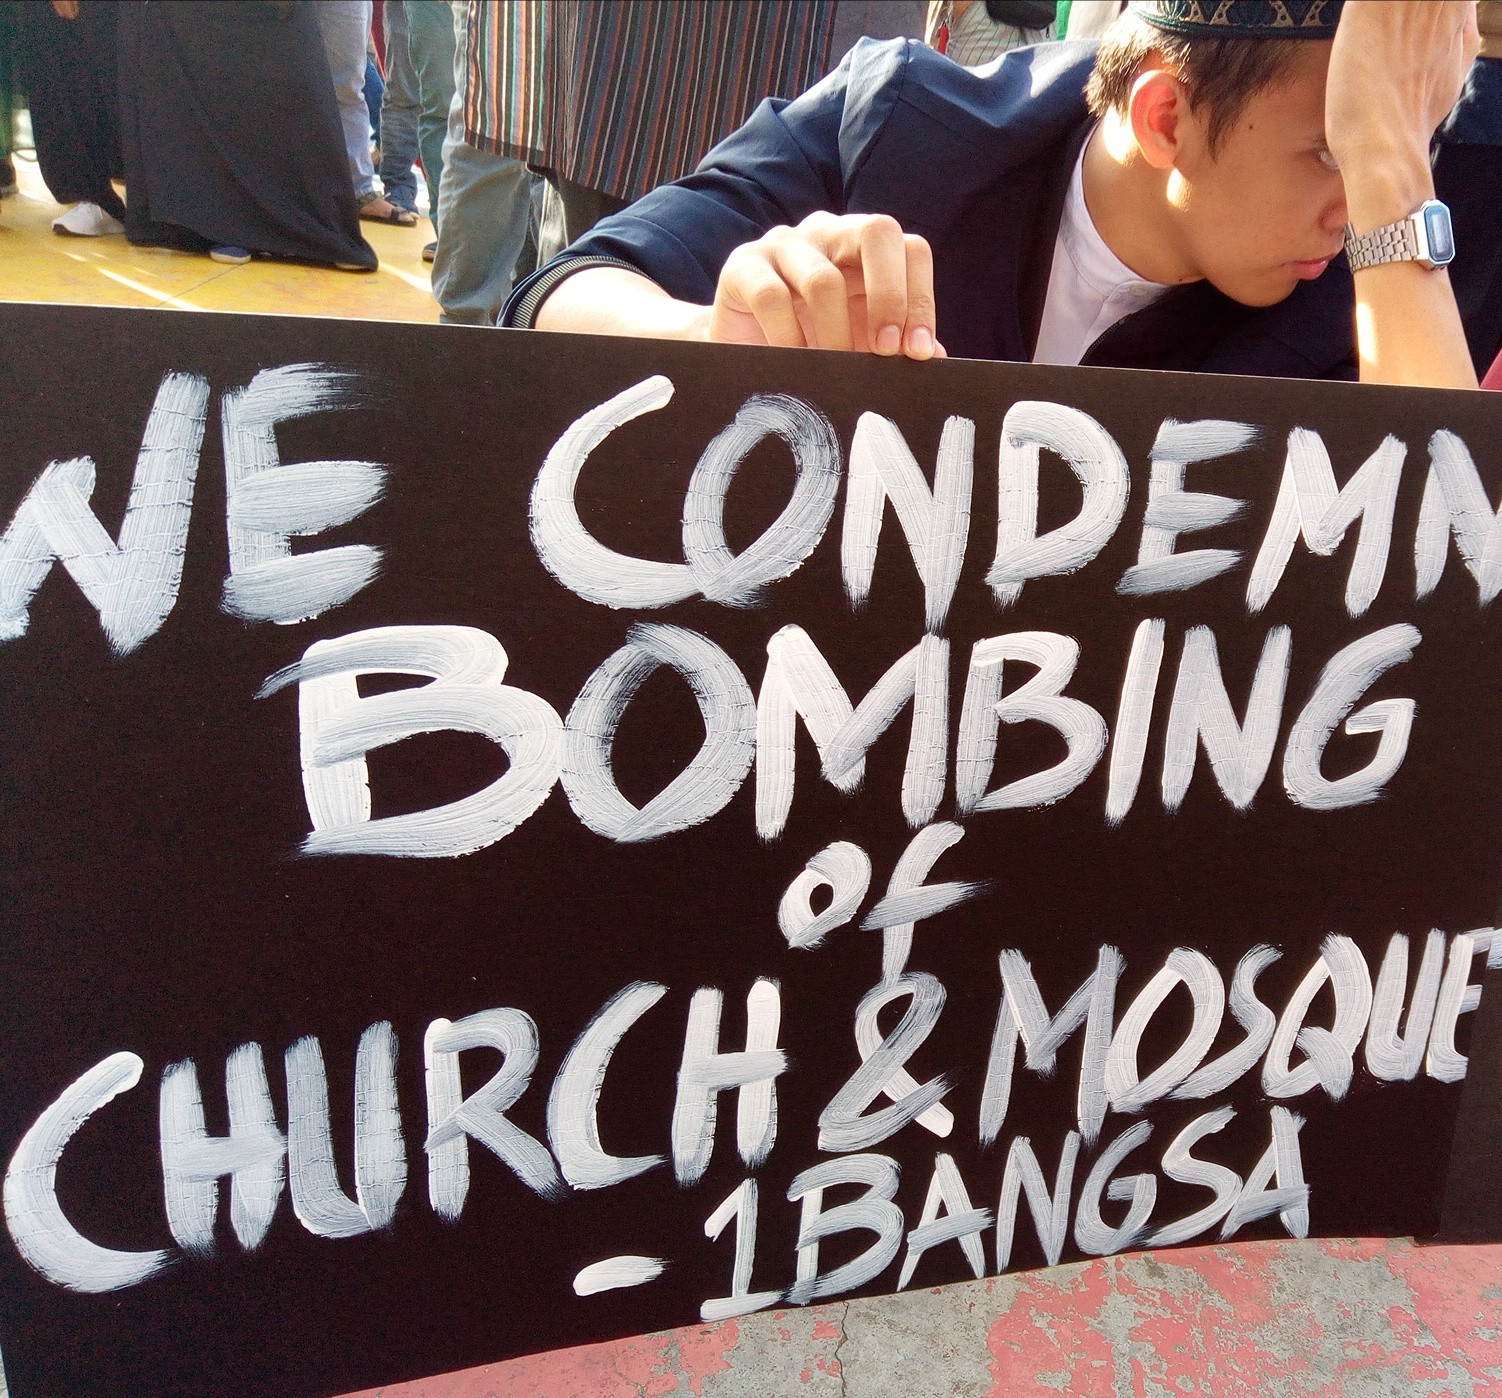 ​NCMF Appeals to All Filipinos for Calm Over Jolo & Zamboanga Bomb Attacks